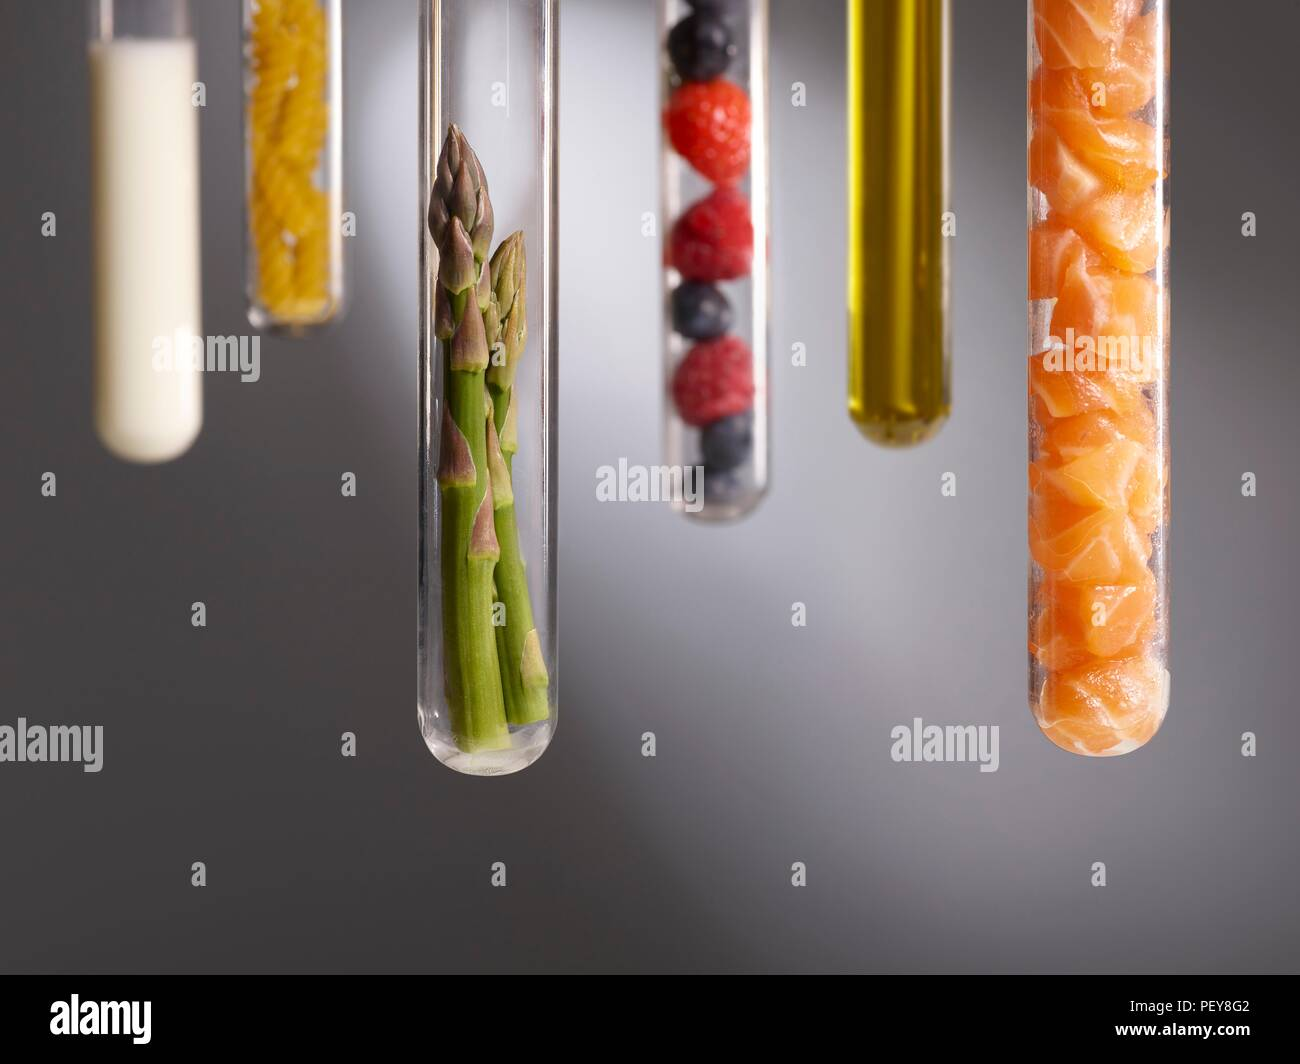 Food groups in test tubes, studio shot. - Stock Image